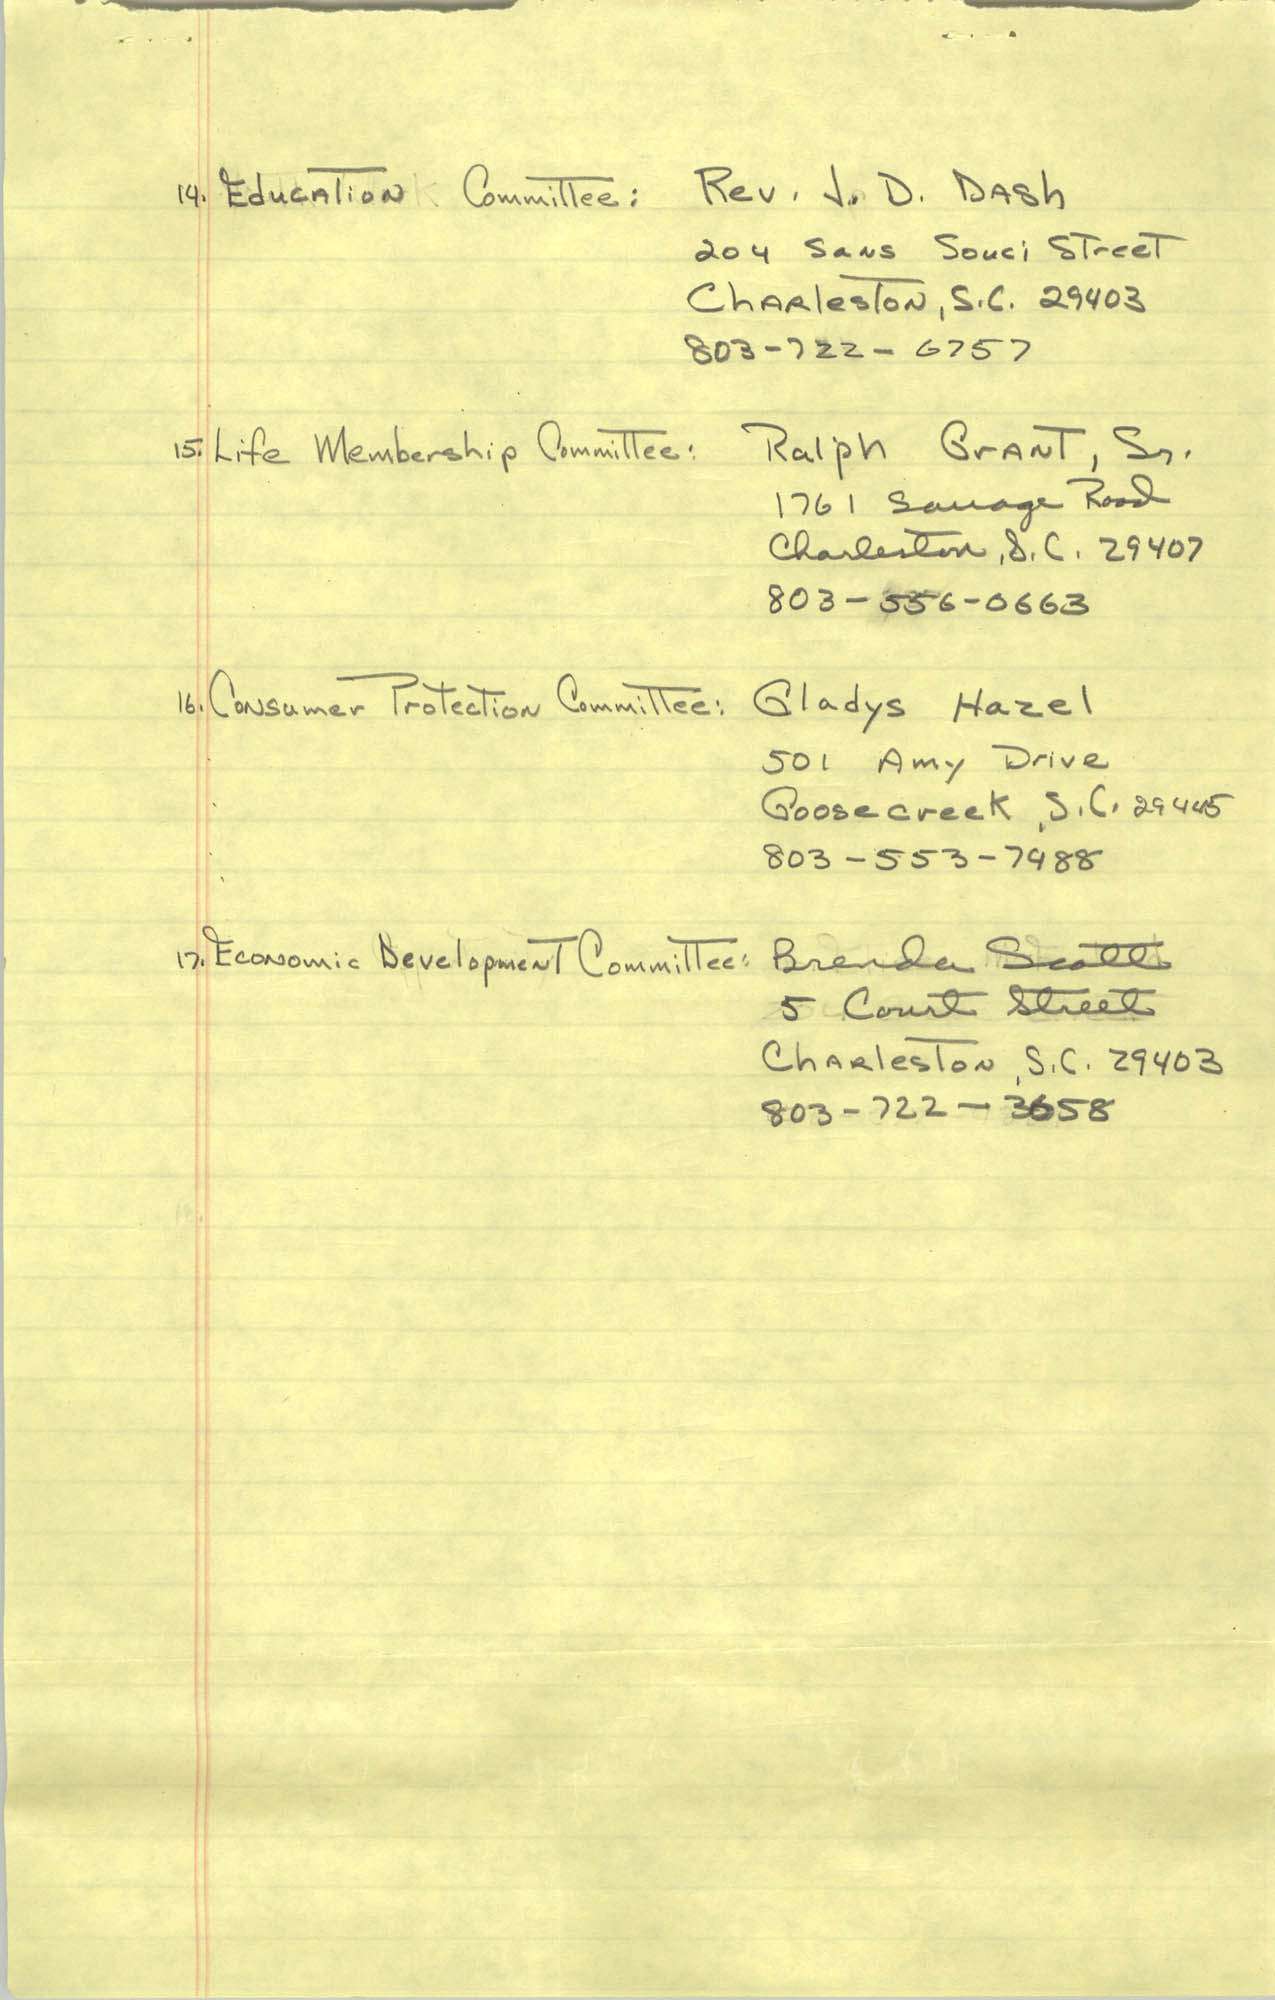 1982-83 Roster of Officials of the Charleston, South Carolina Branch of the NAACP, Page 6